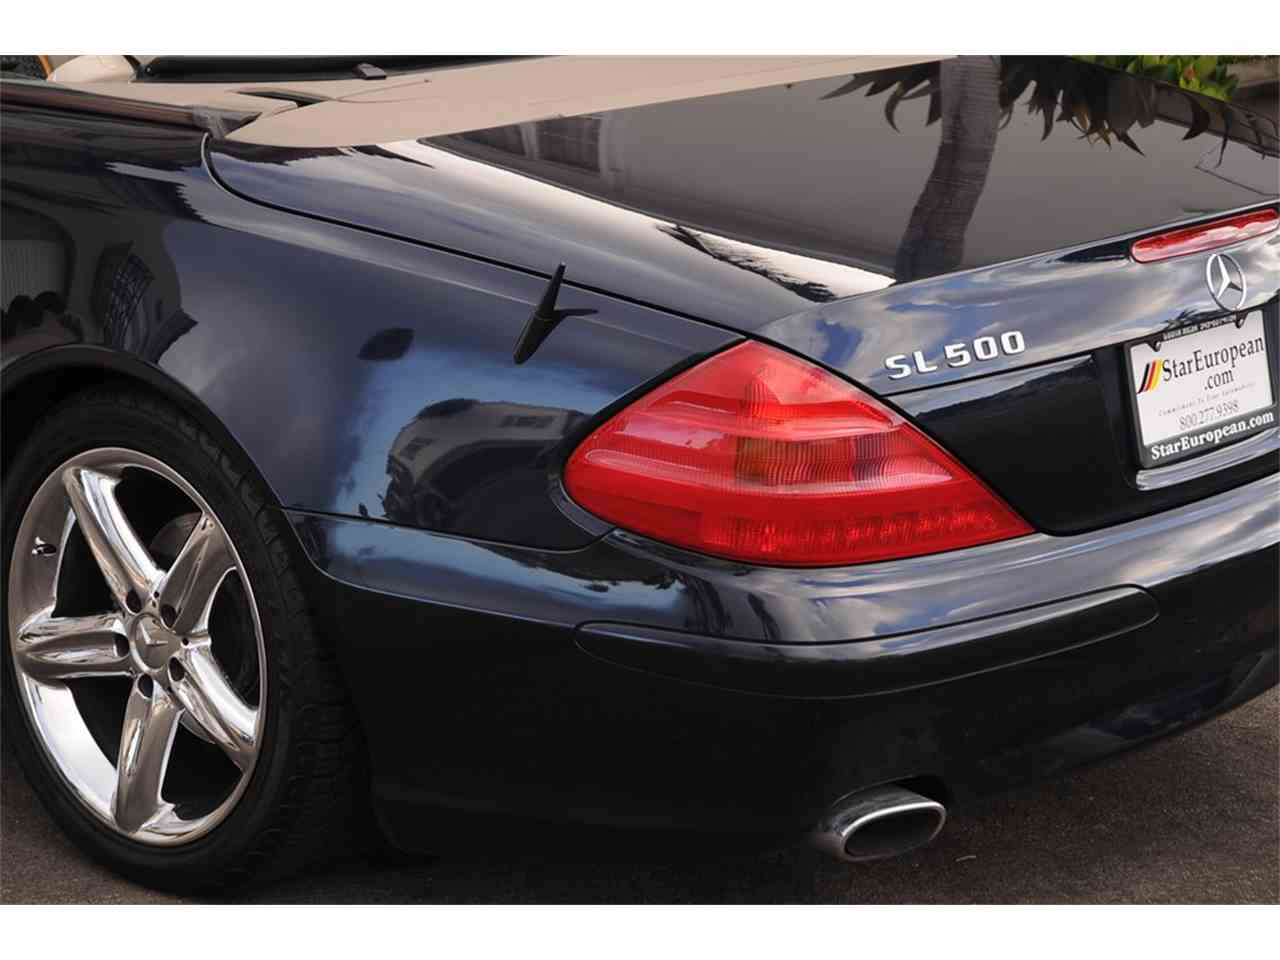 Large Picture of '03 SL500 located in California - $13,990.00 Offered by Star European Inc. - M694